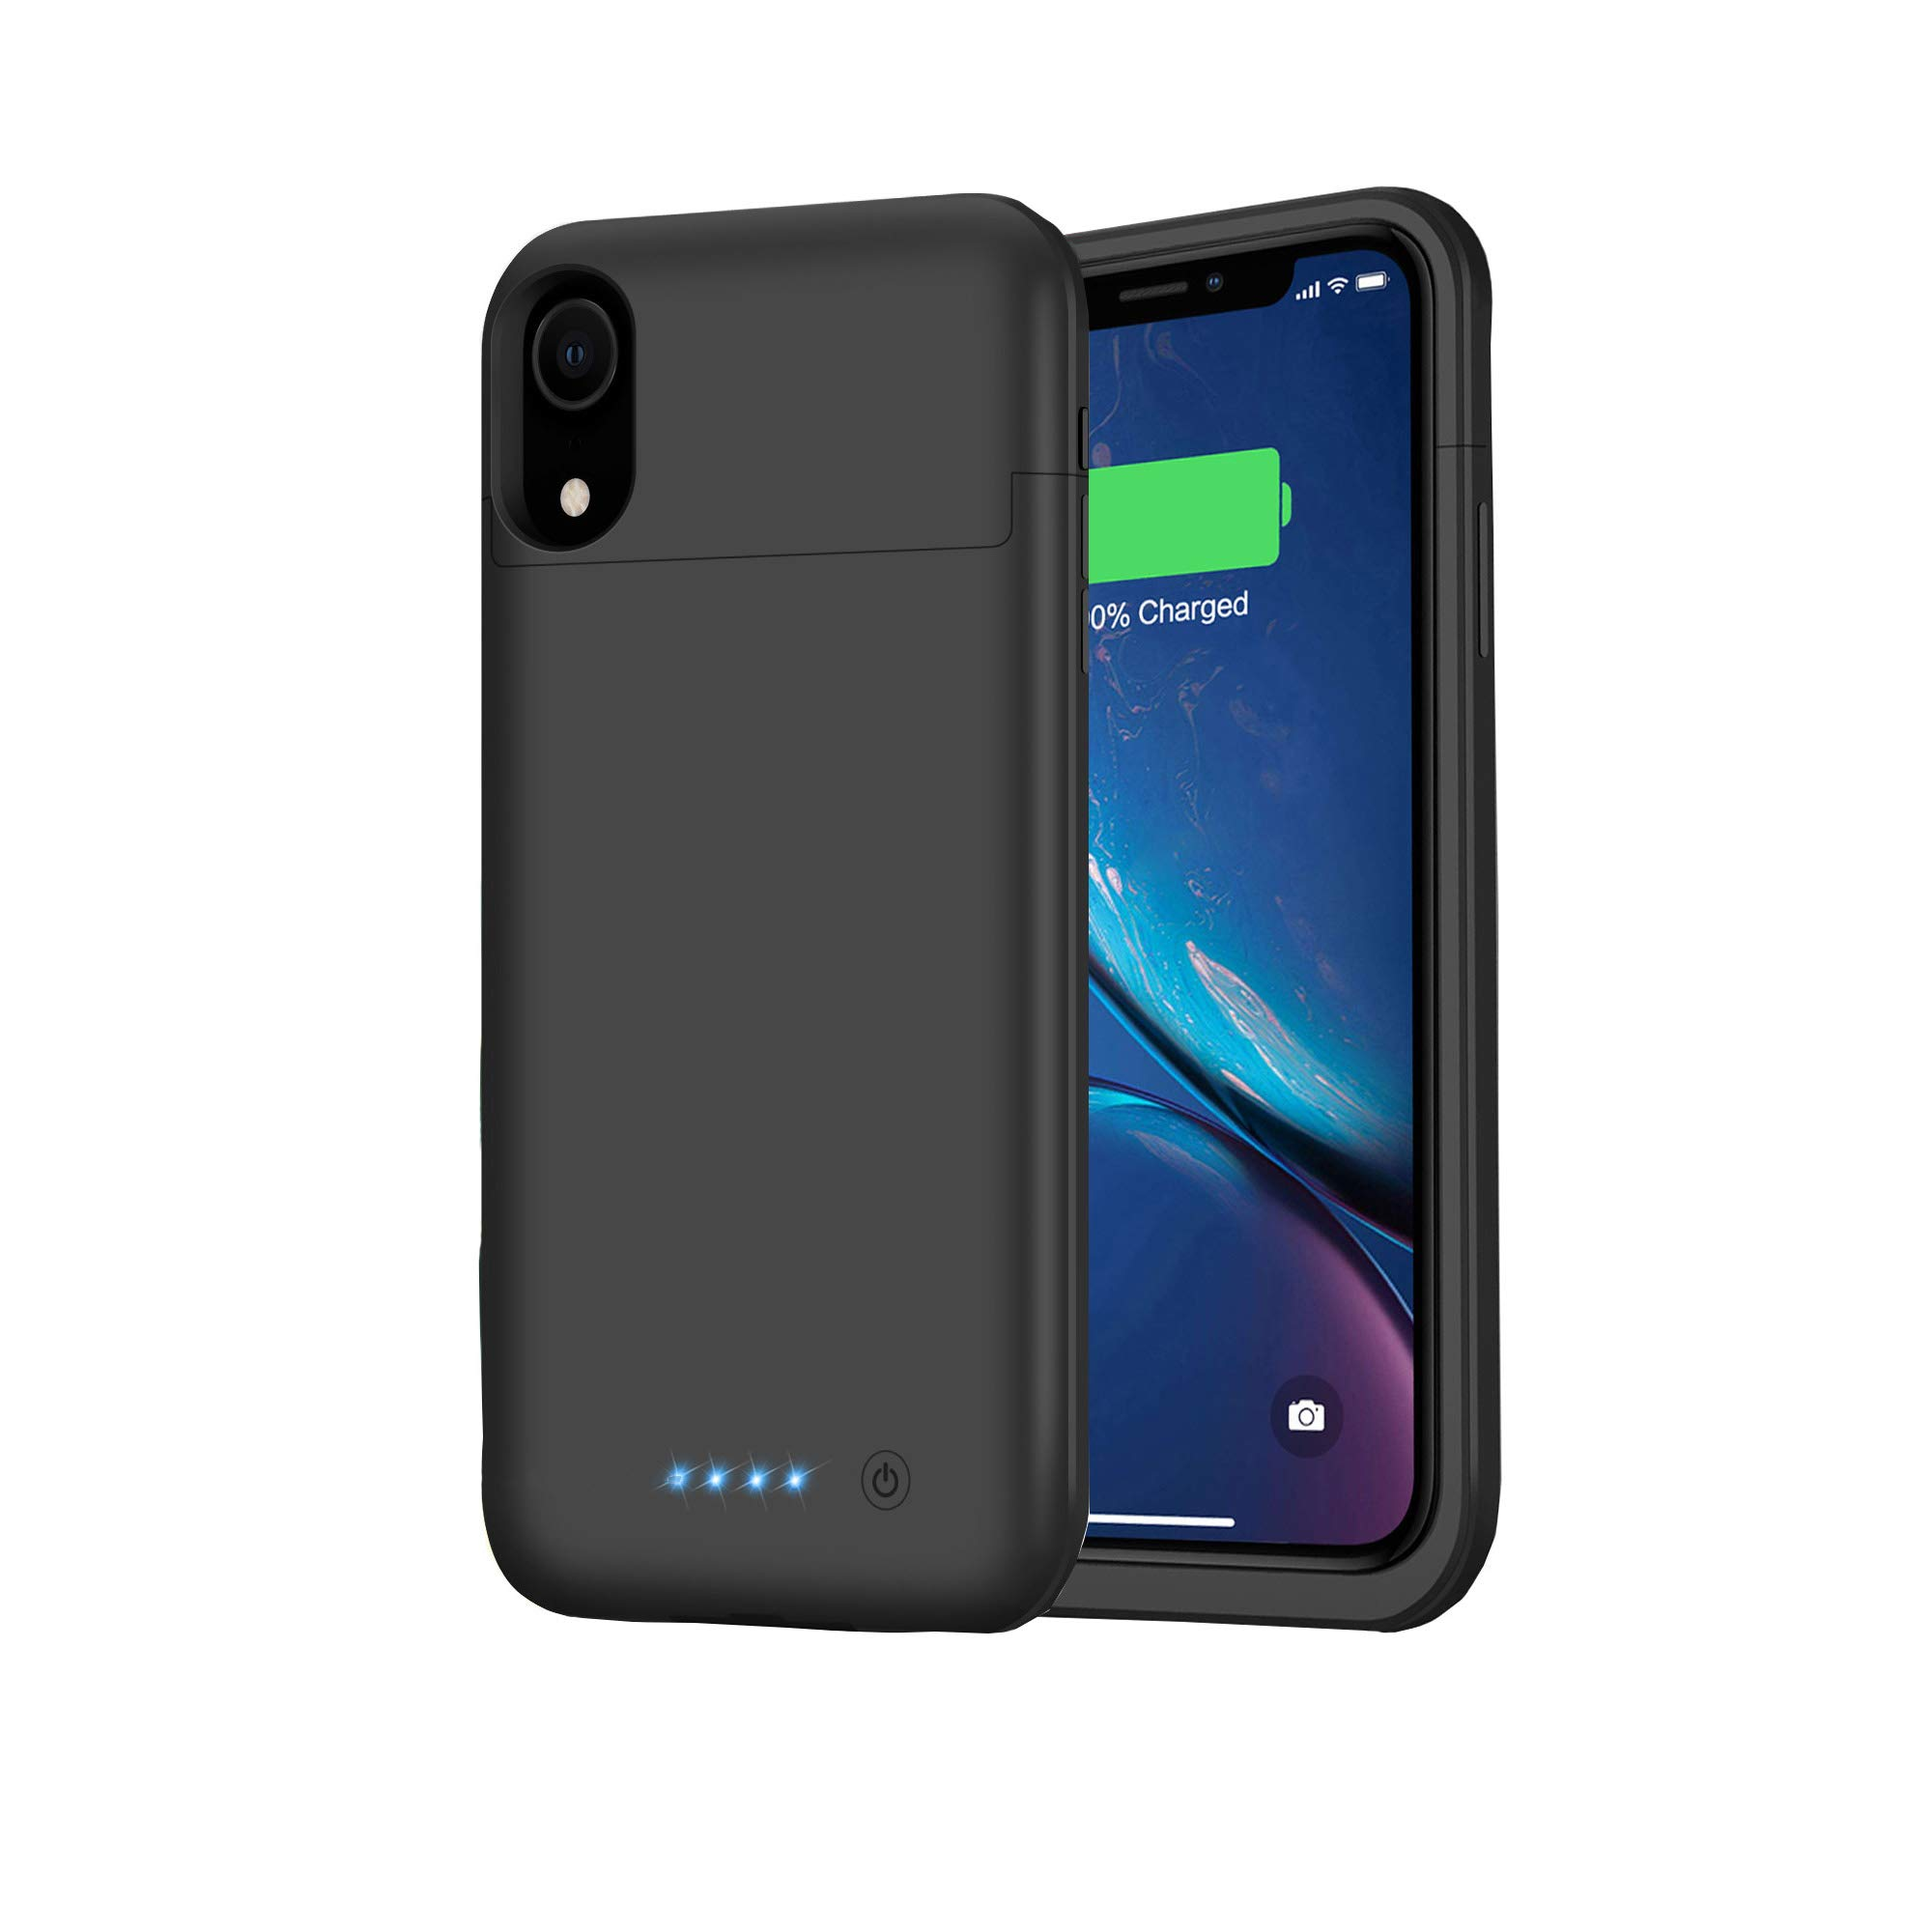 Feob Battery Case for iPhone XR, Upgraded 5500mAh Portable Charging Case Extended Battery Pack for iPhone XR Charger Case (6.1 inch)- Black by Feob